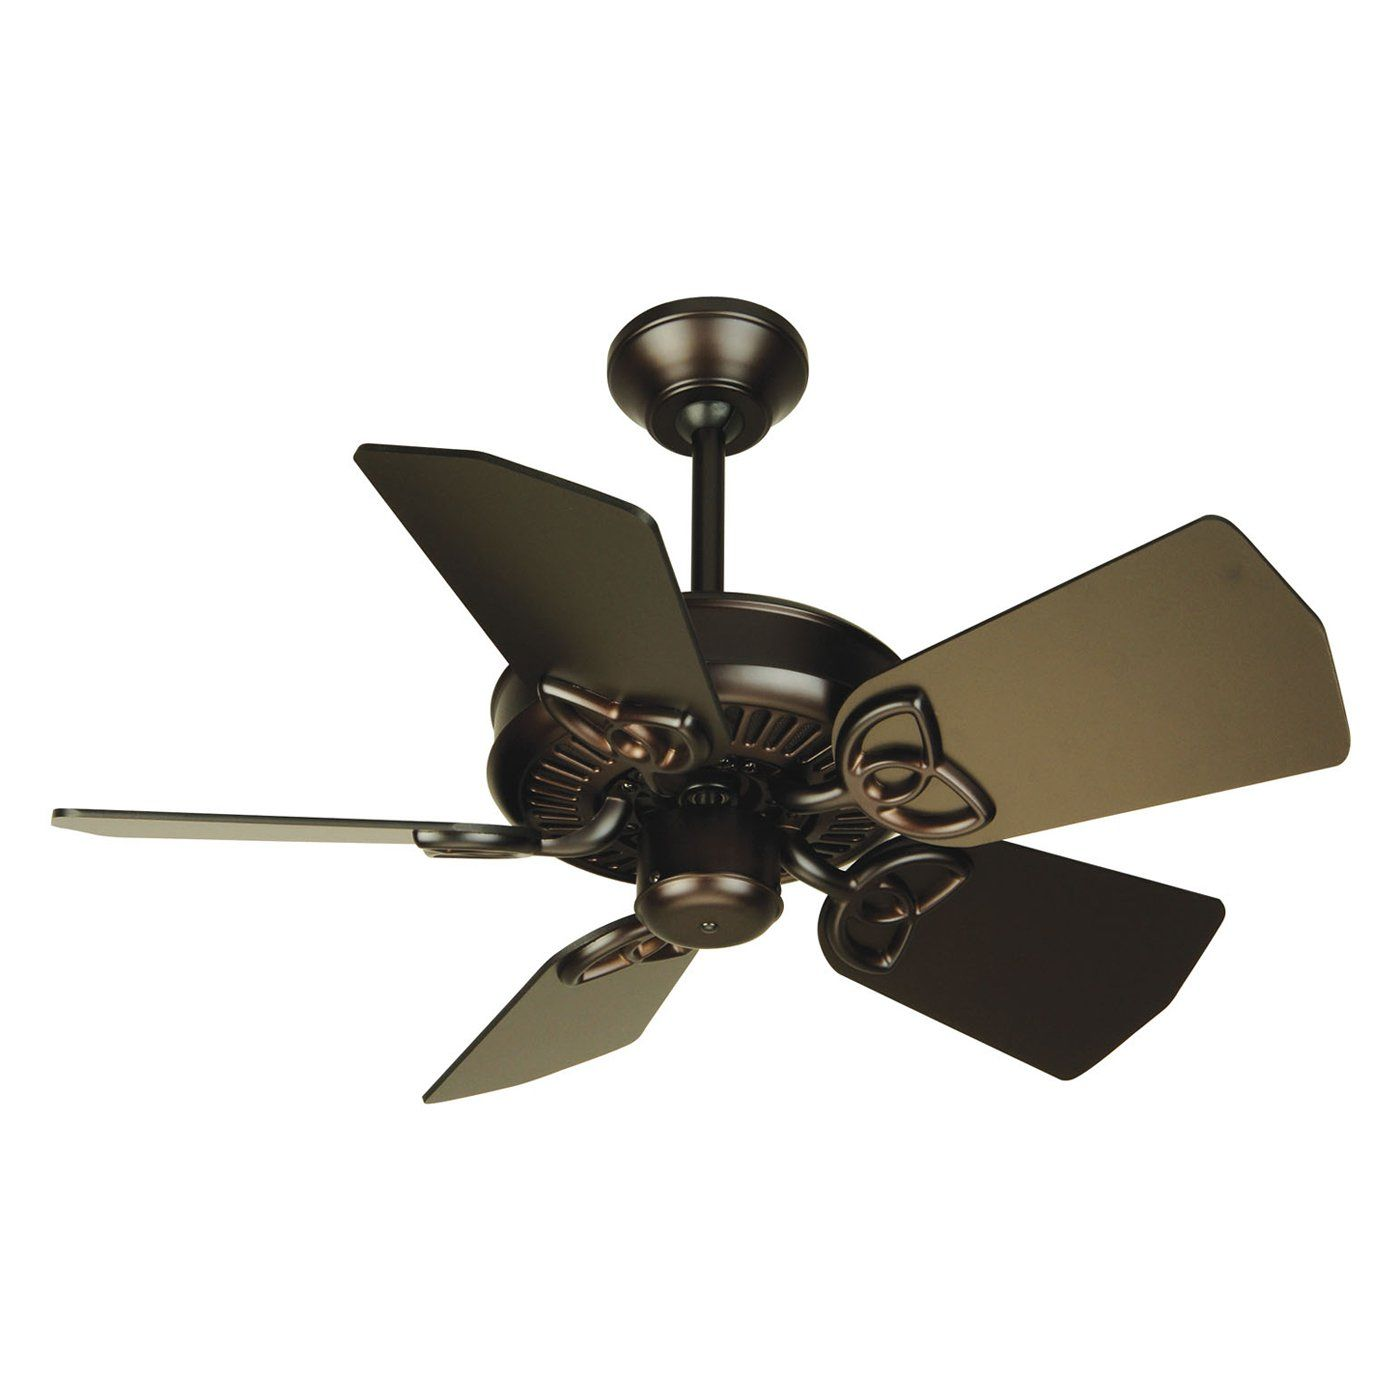 Shop Craftmade K1074 30 in Piccolo Kit Ceiling Fan at ATG Stores